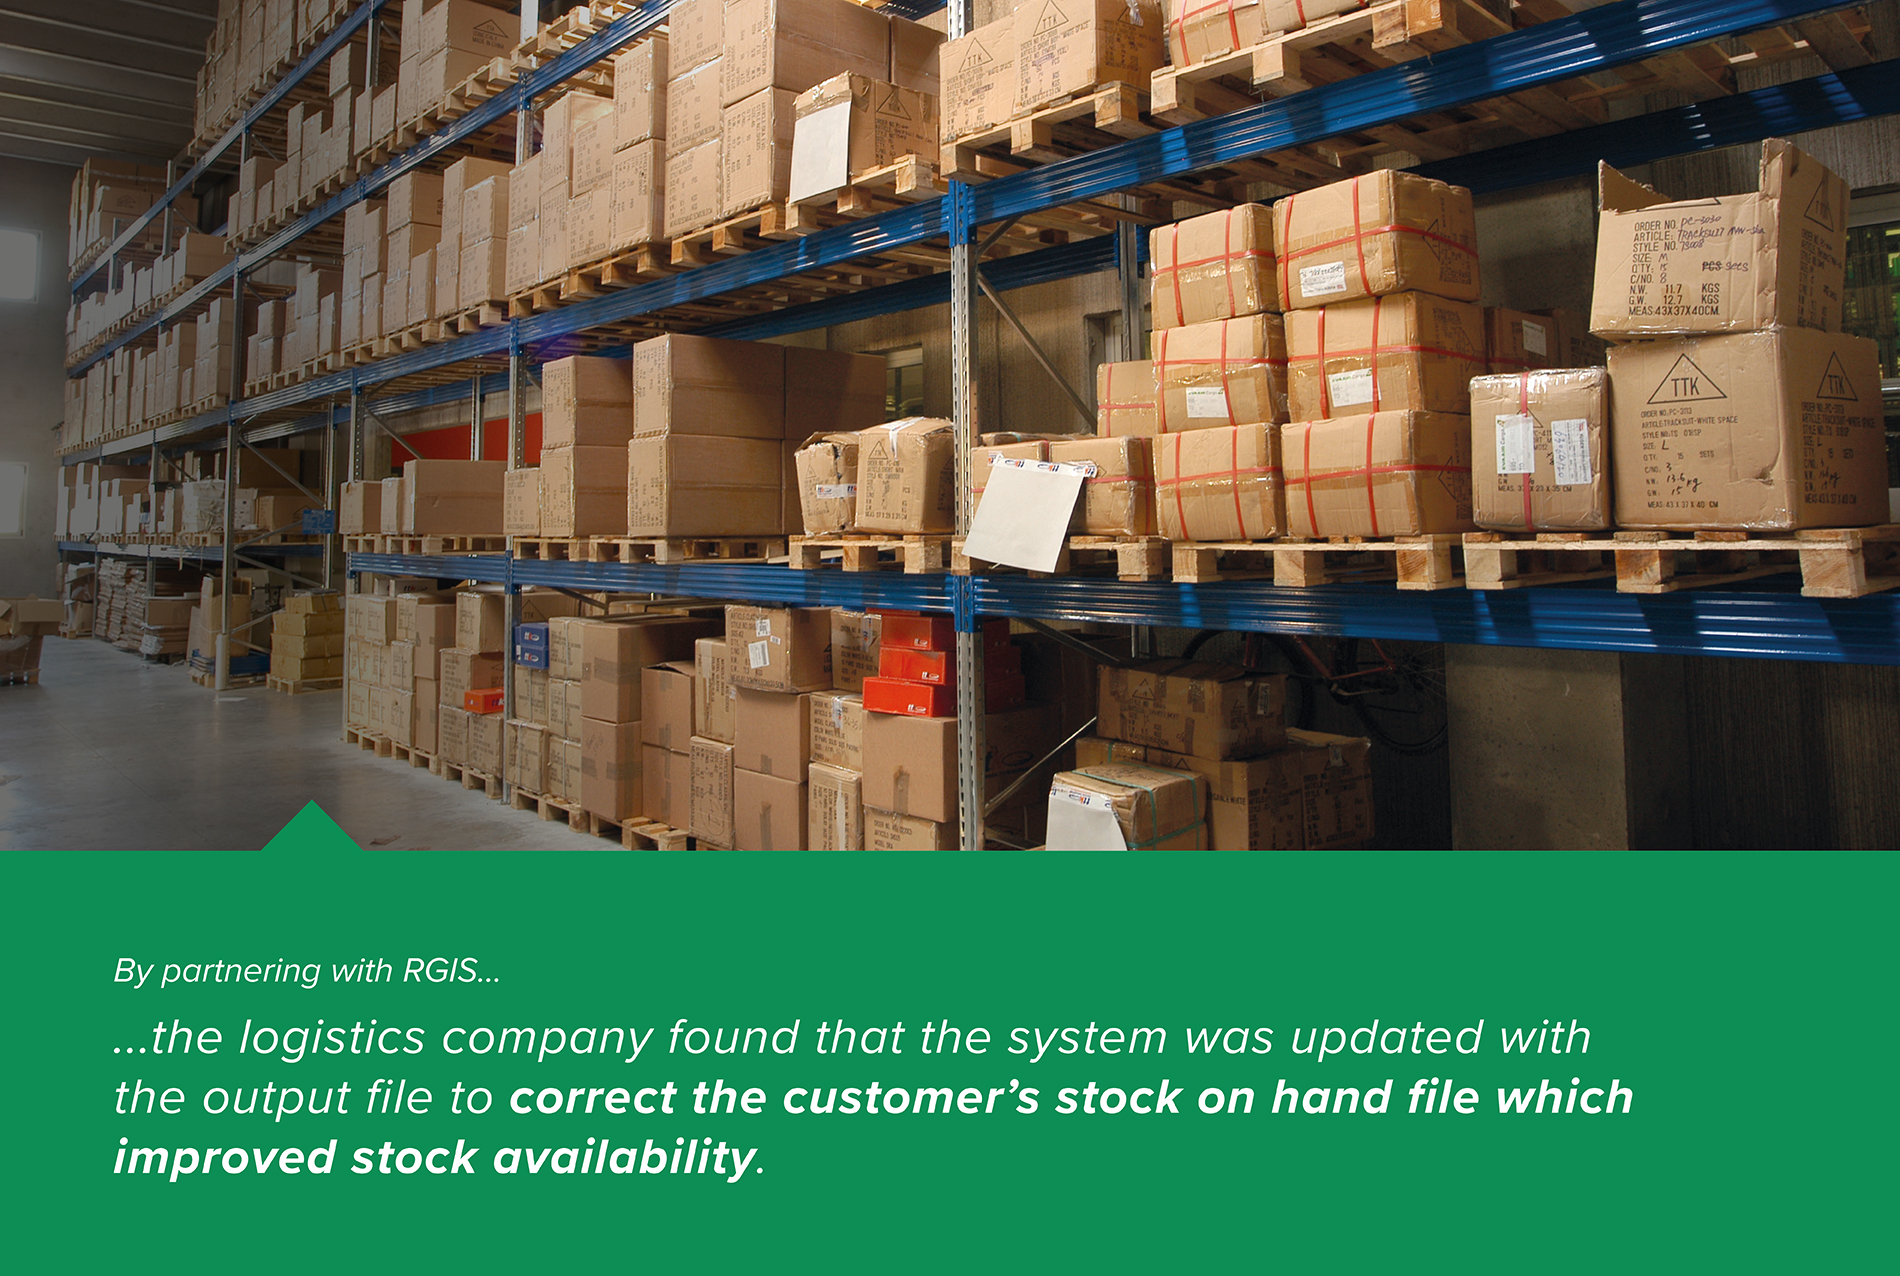 3PL Customer Stock Count to Update Stock on Hand File